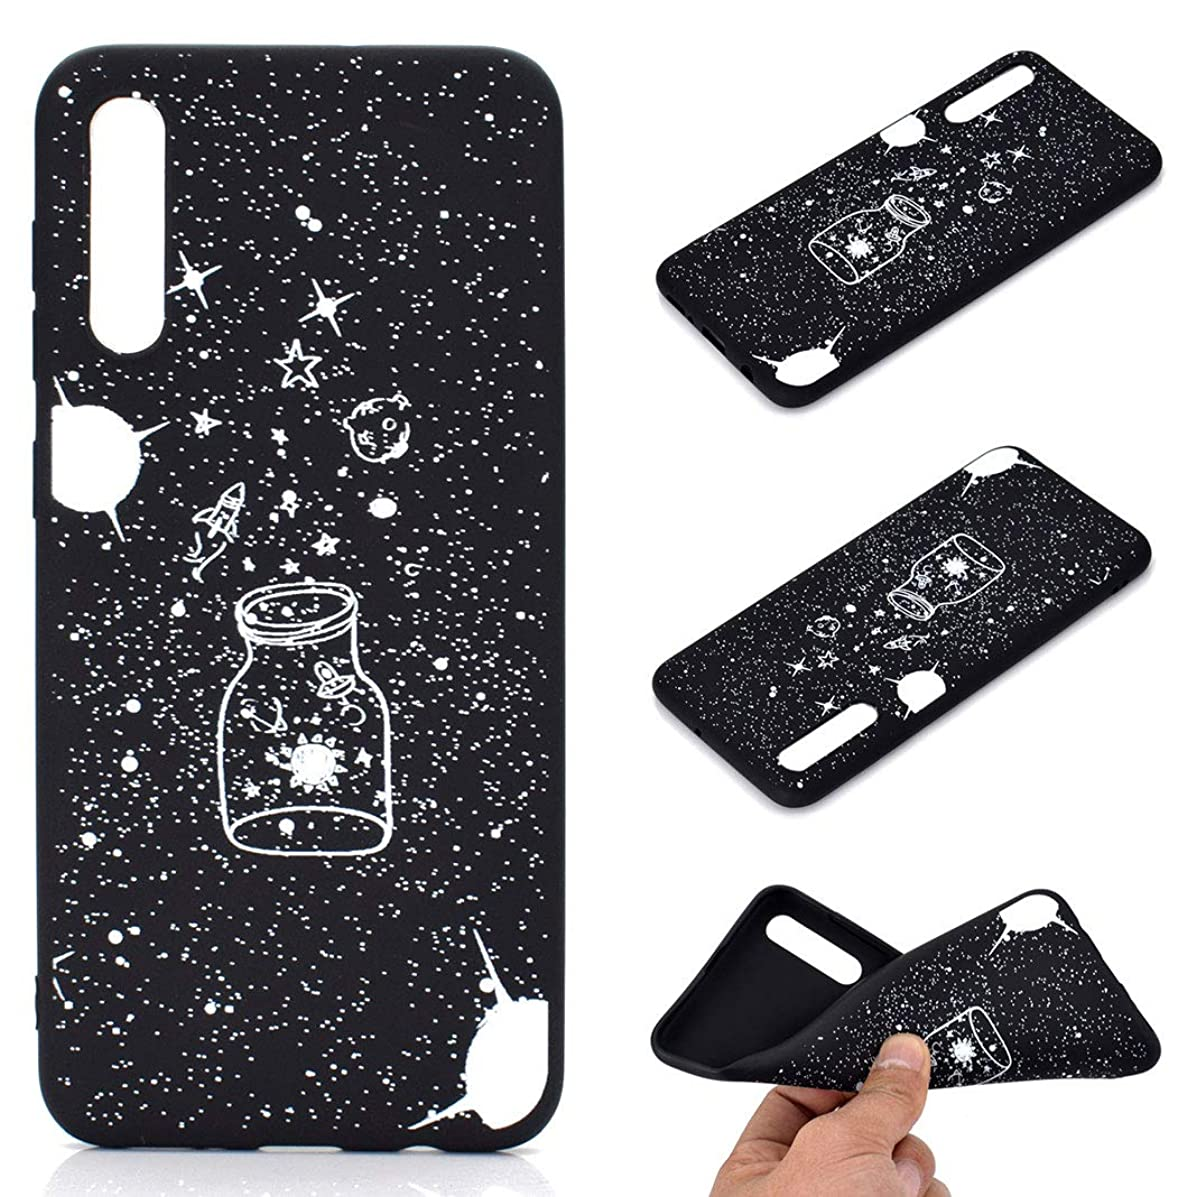 For Samsung Galaxy A50(2019) Phone Case, Flexibility TPU Silicone Cover Case with Antiskid Dustproof Drop Resistance Anti-Scratch, Effective Protection for Galaxy A50(2019)-Style 1